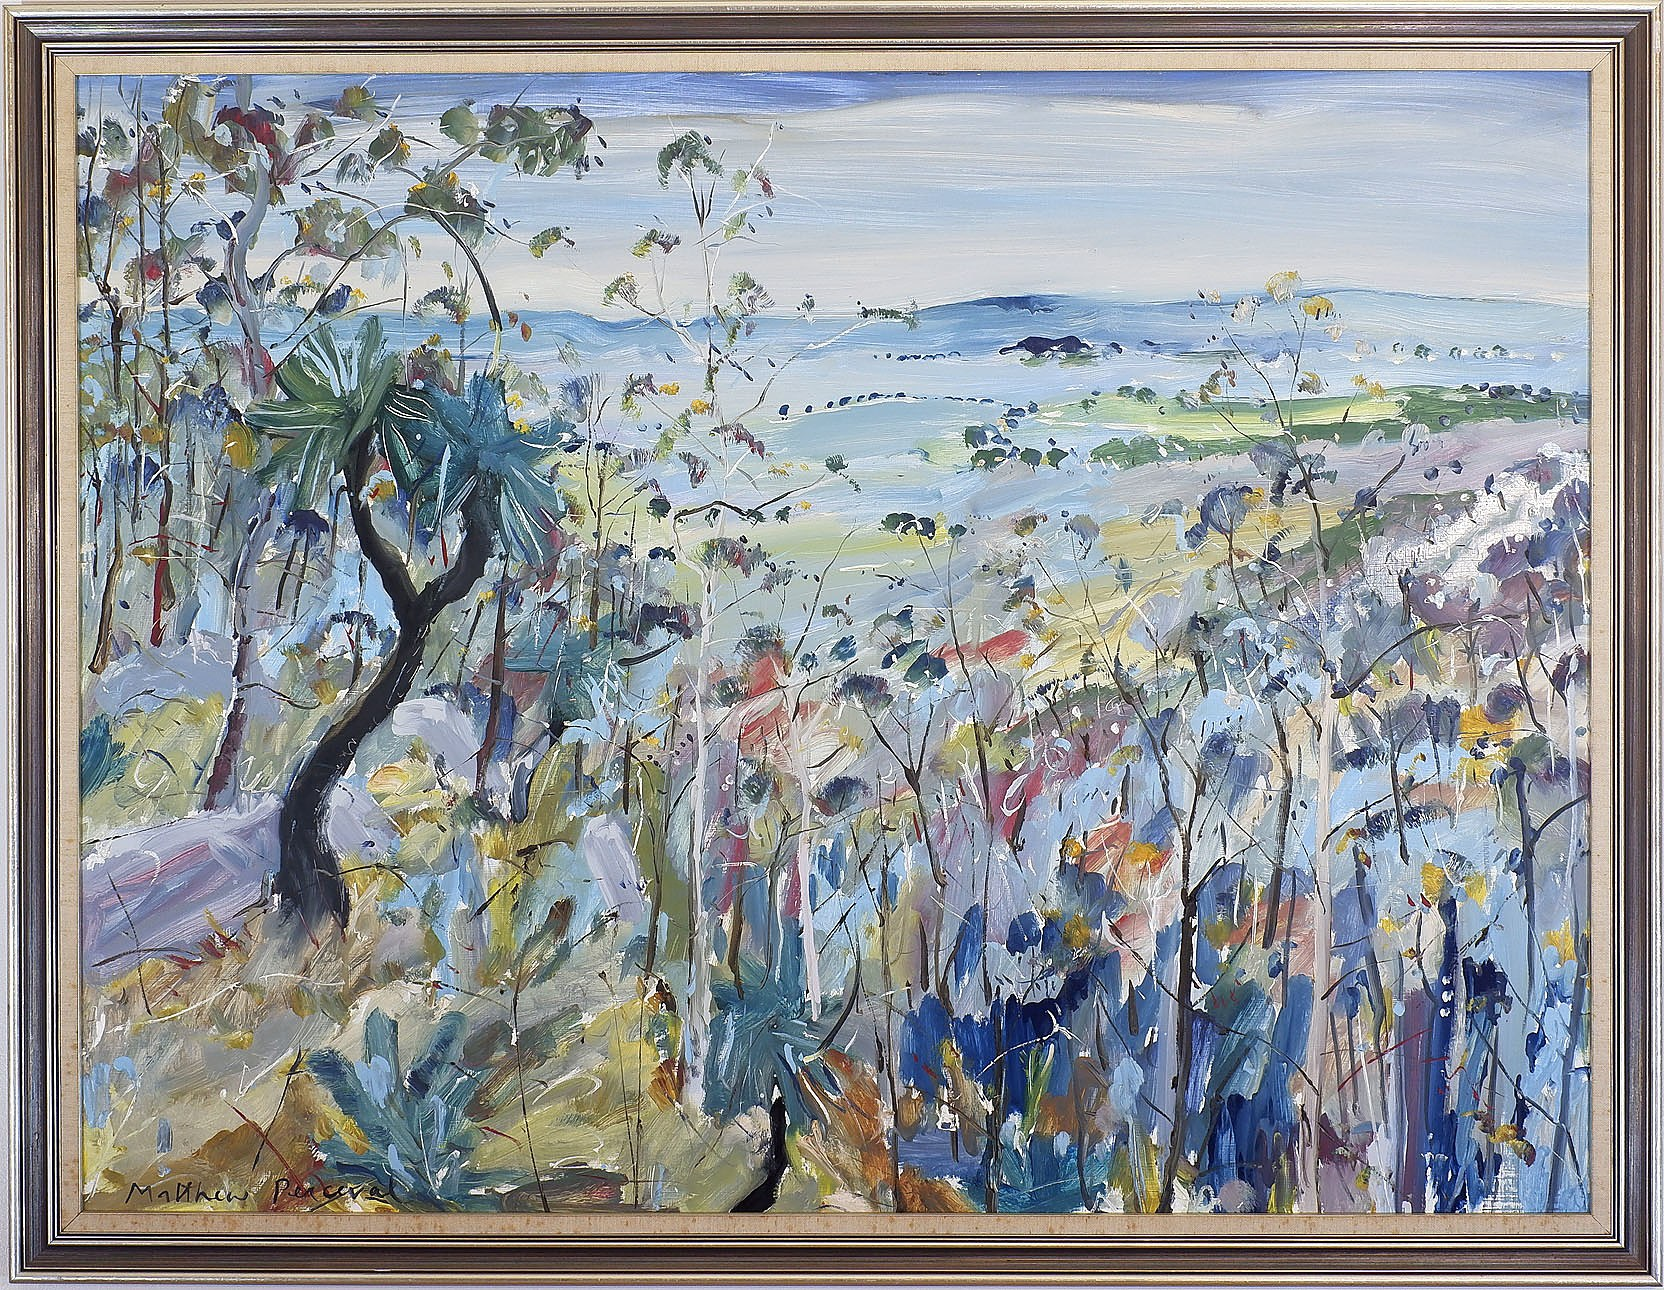 'Matthew Perceval (b. 1945), Black Boys at Vincents Lookout I, Oil on Board'